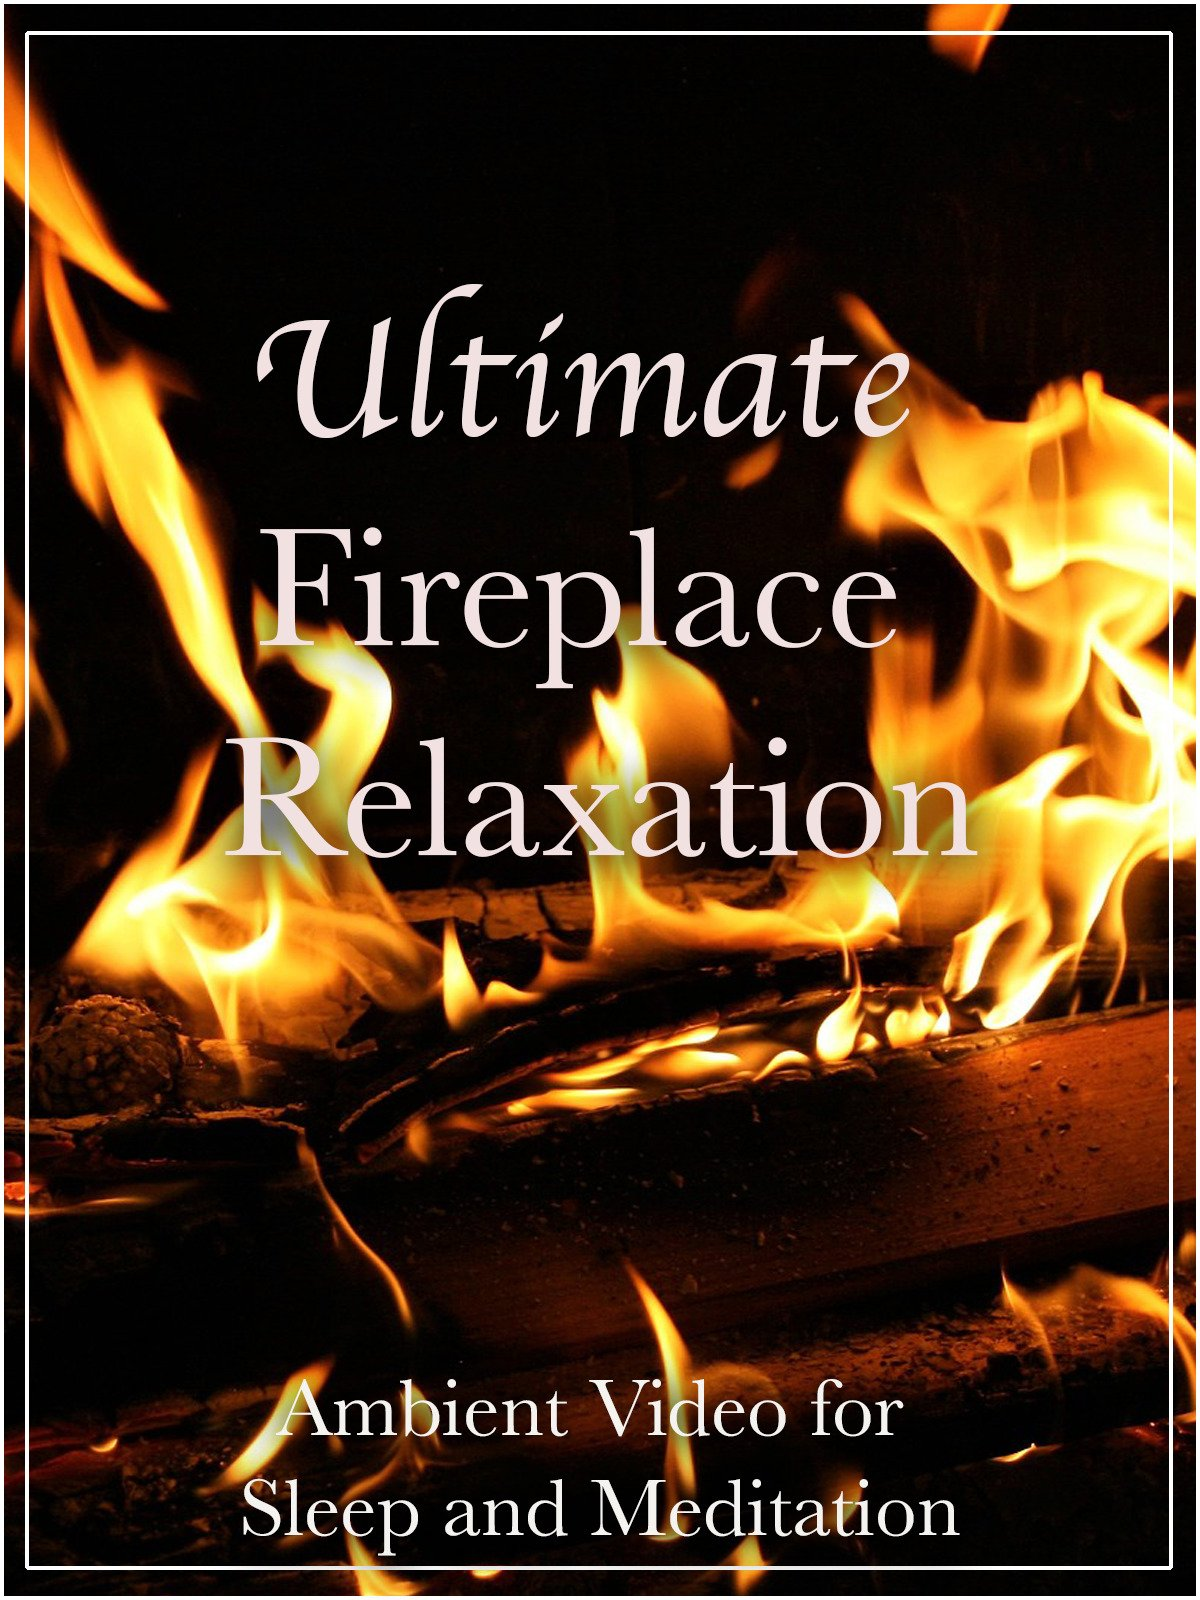 Ultimate Fireplace Relaxation Ambient Video for Sleep and Meditation on Amazon Prime Instant Video UK